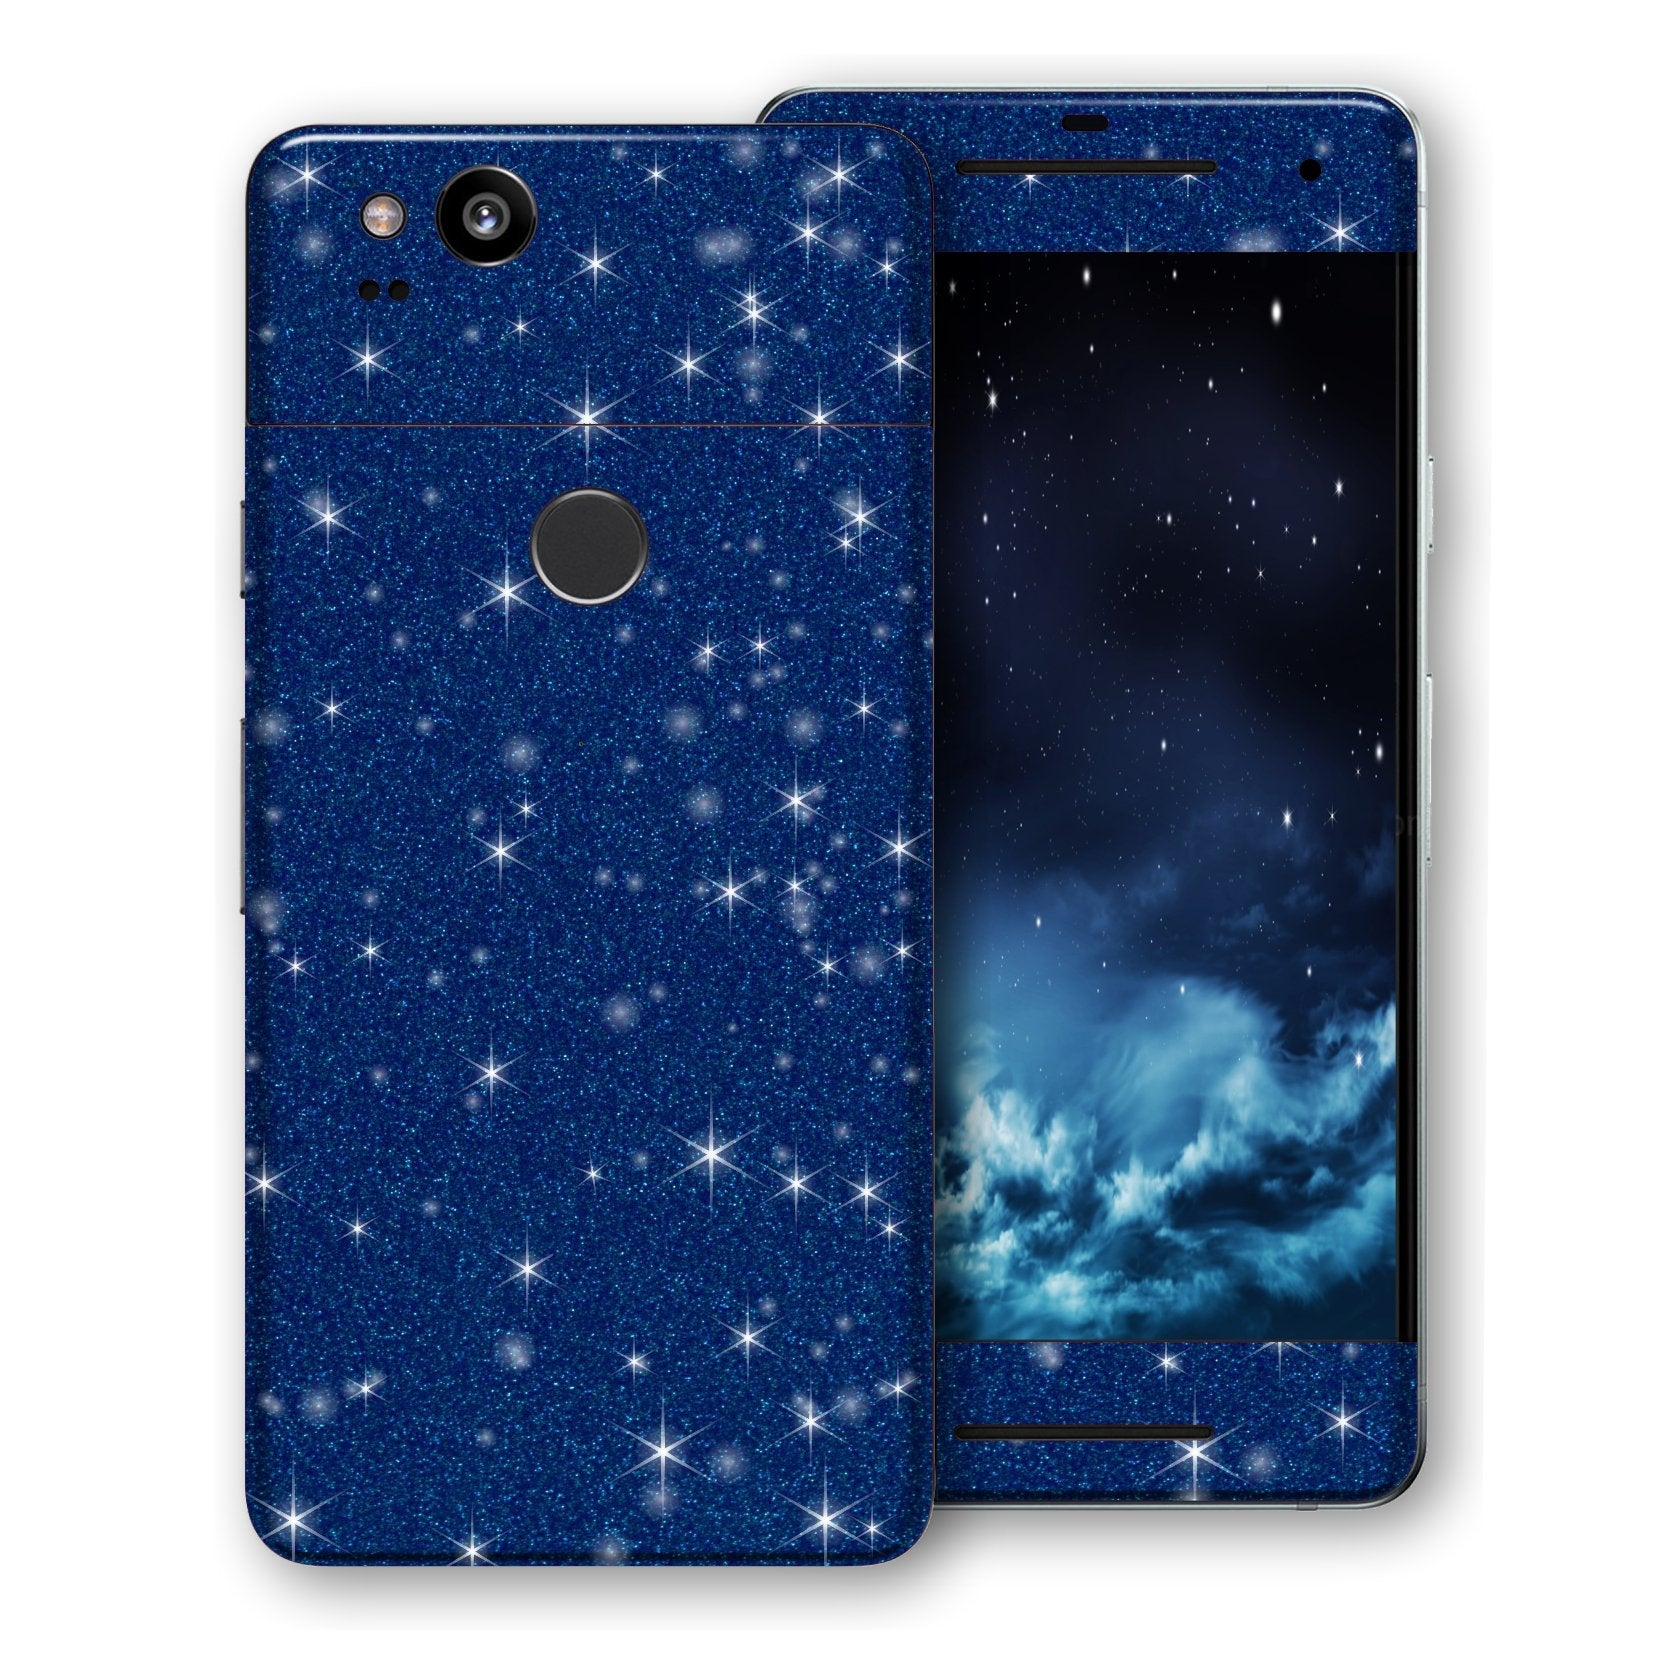 Google Pixel 2 Diamond Blue Shimmering, Sparkling, Glitter Skin, Decal, Wrap, Protector, Cover by EasySkinz | EasySkinz.com